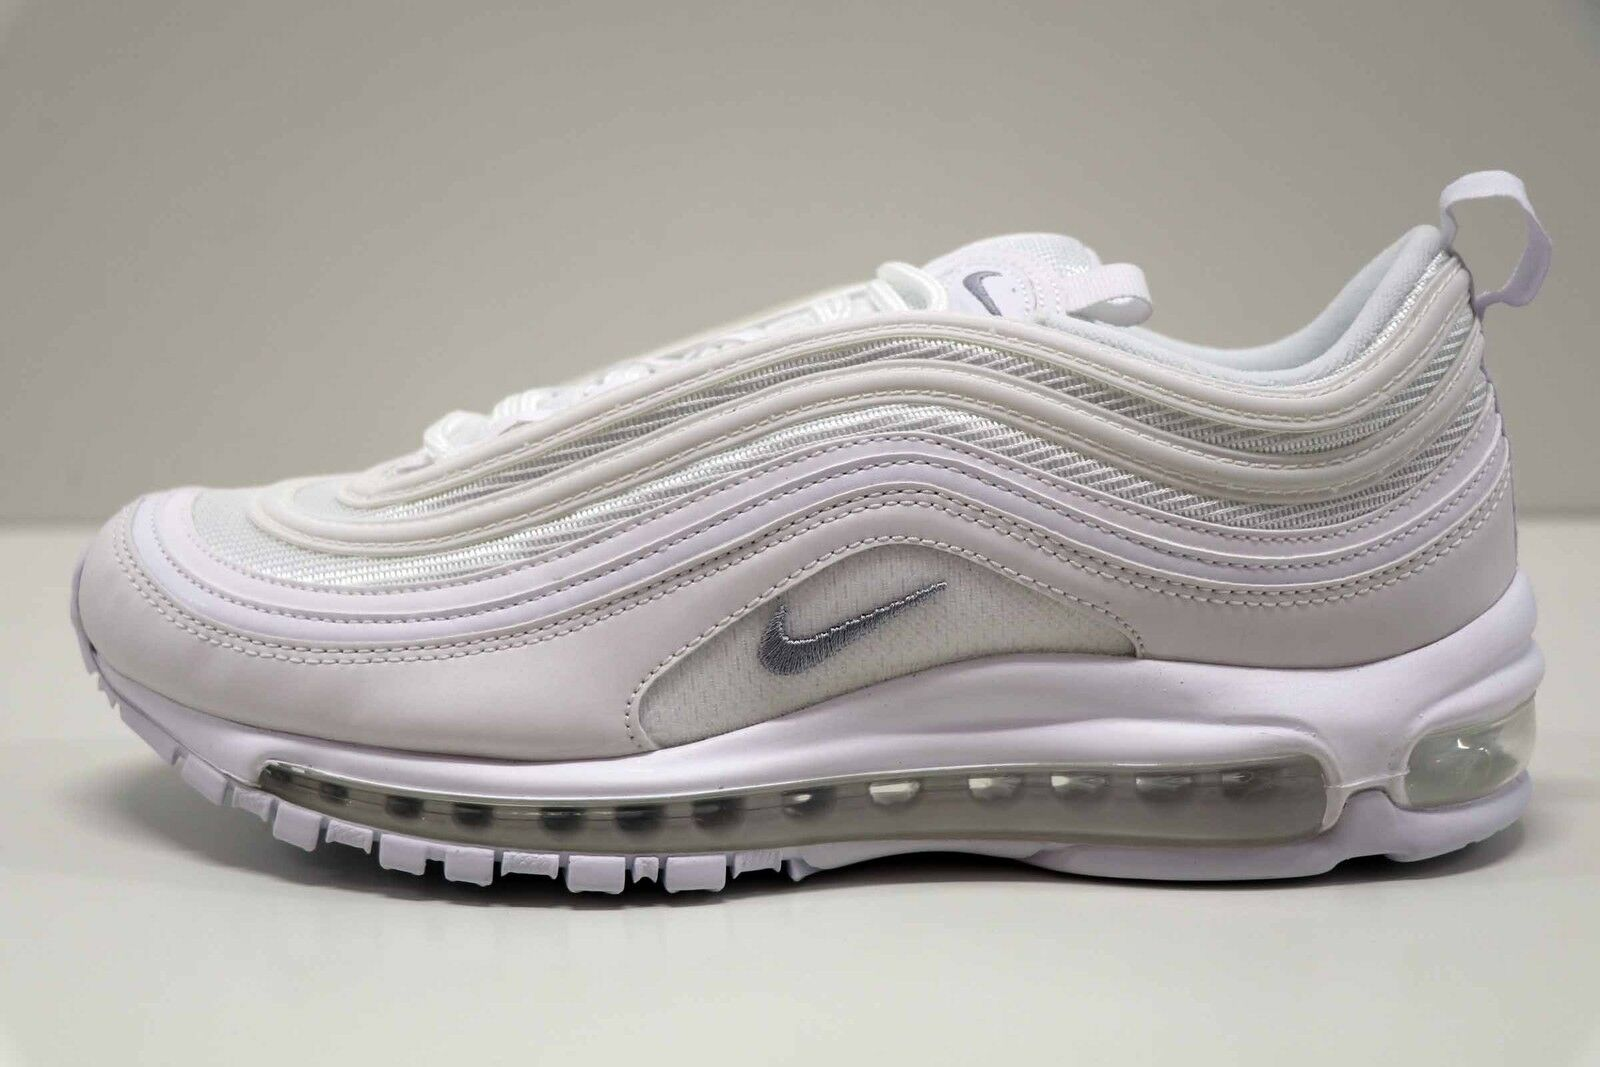 Nike air - max 97  wolf grau - air schwarz 921826 101  9 new in box 819f4c